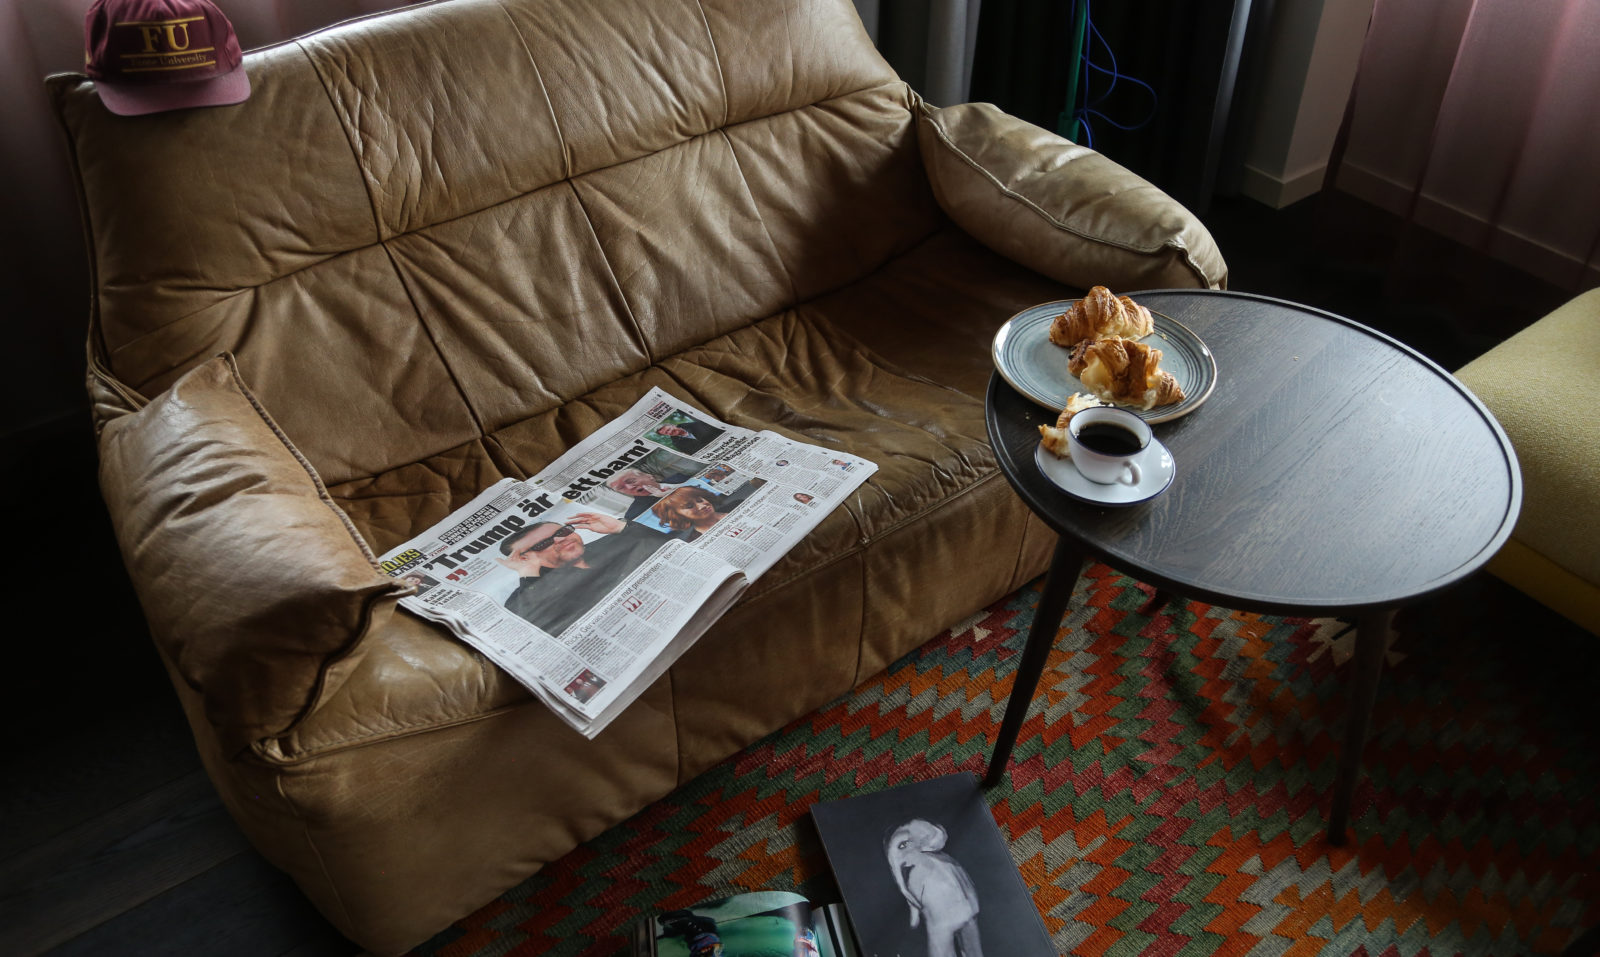 coffee and croisssans for breakfast in homelike atmosphere at Hobo Hotel in Stockholm